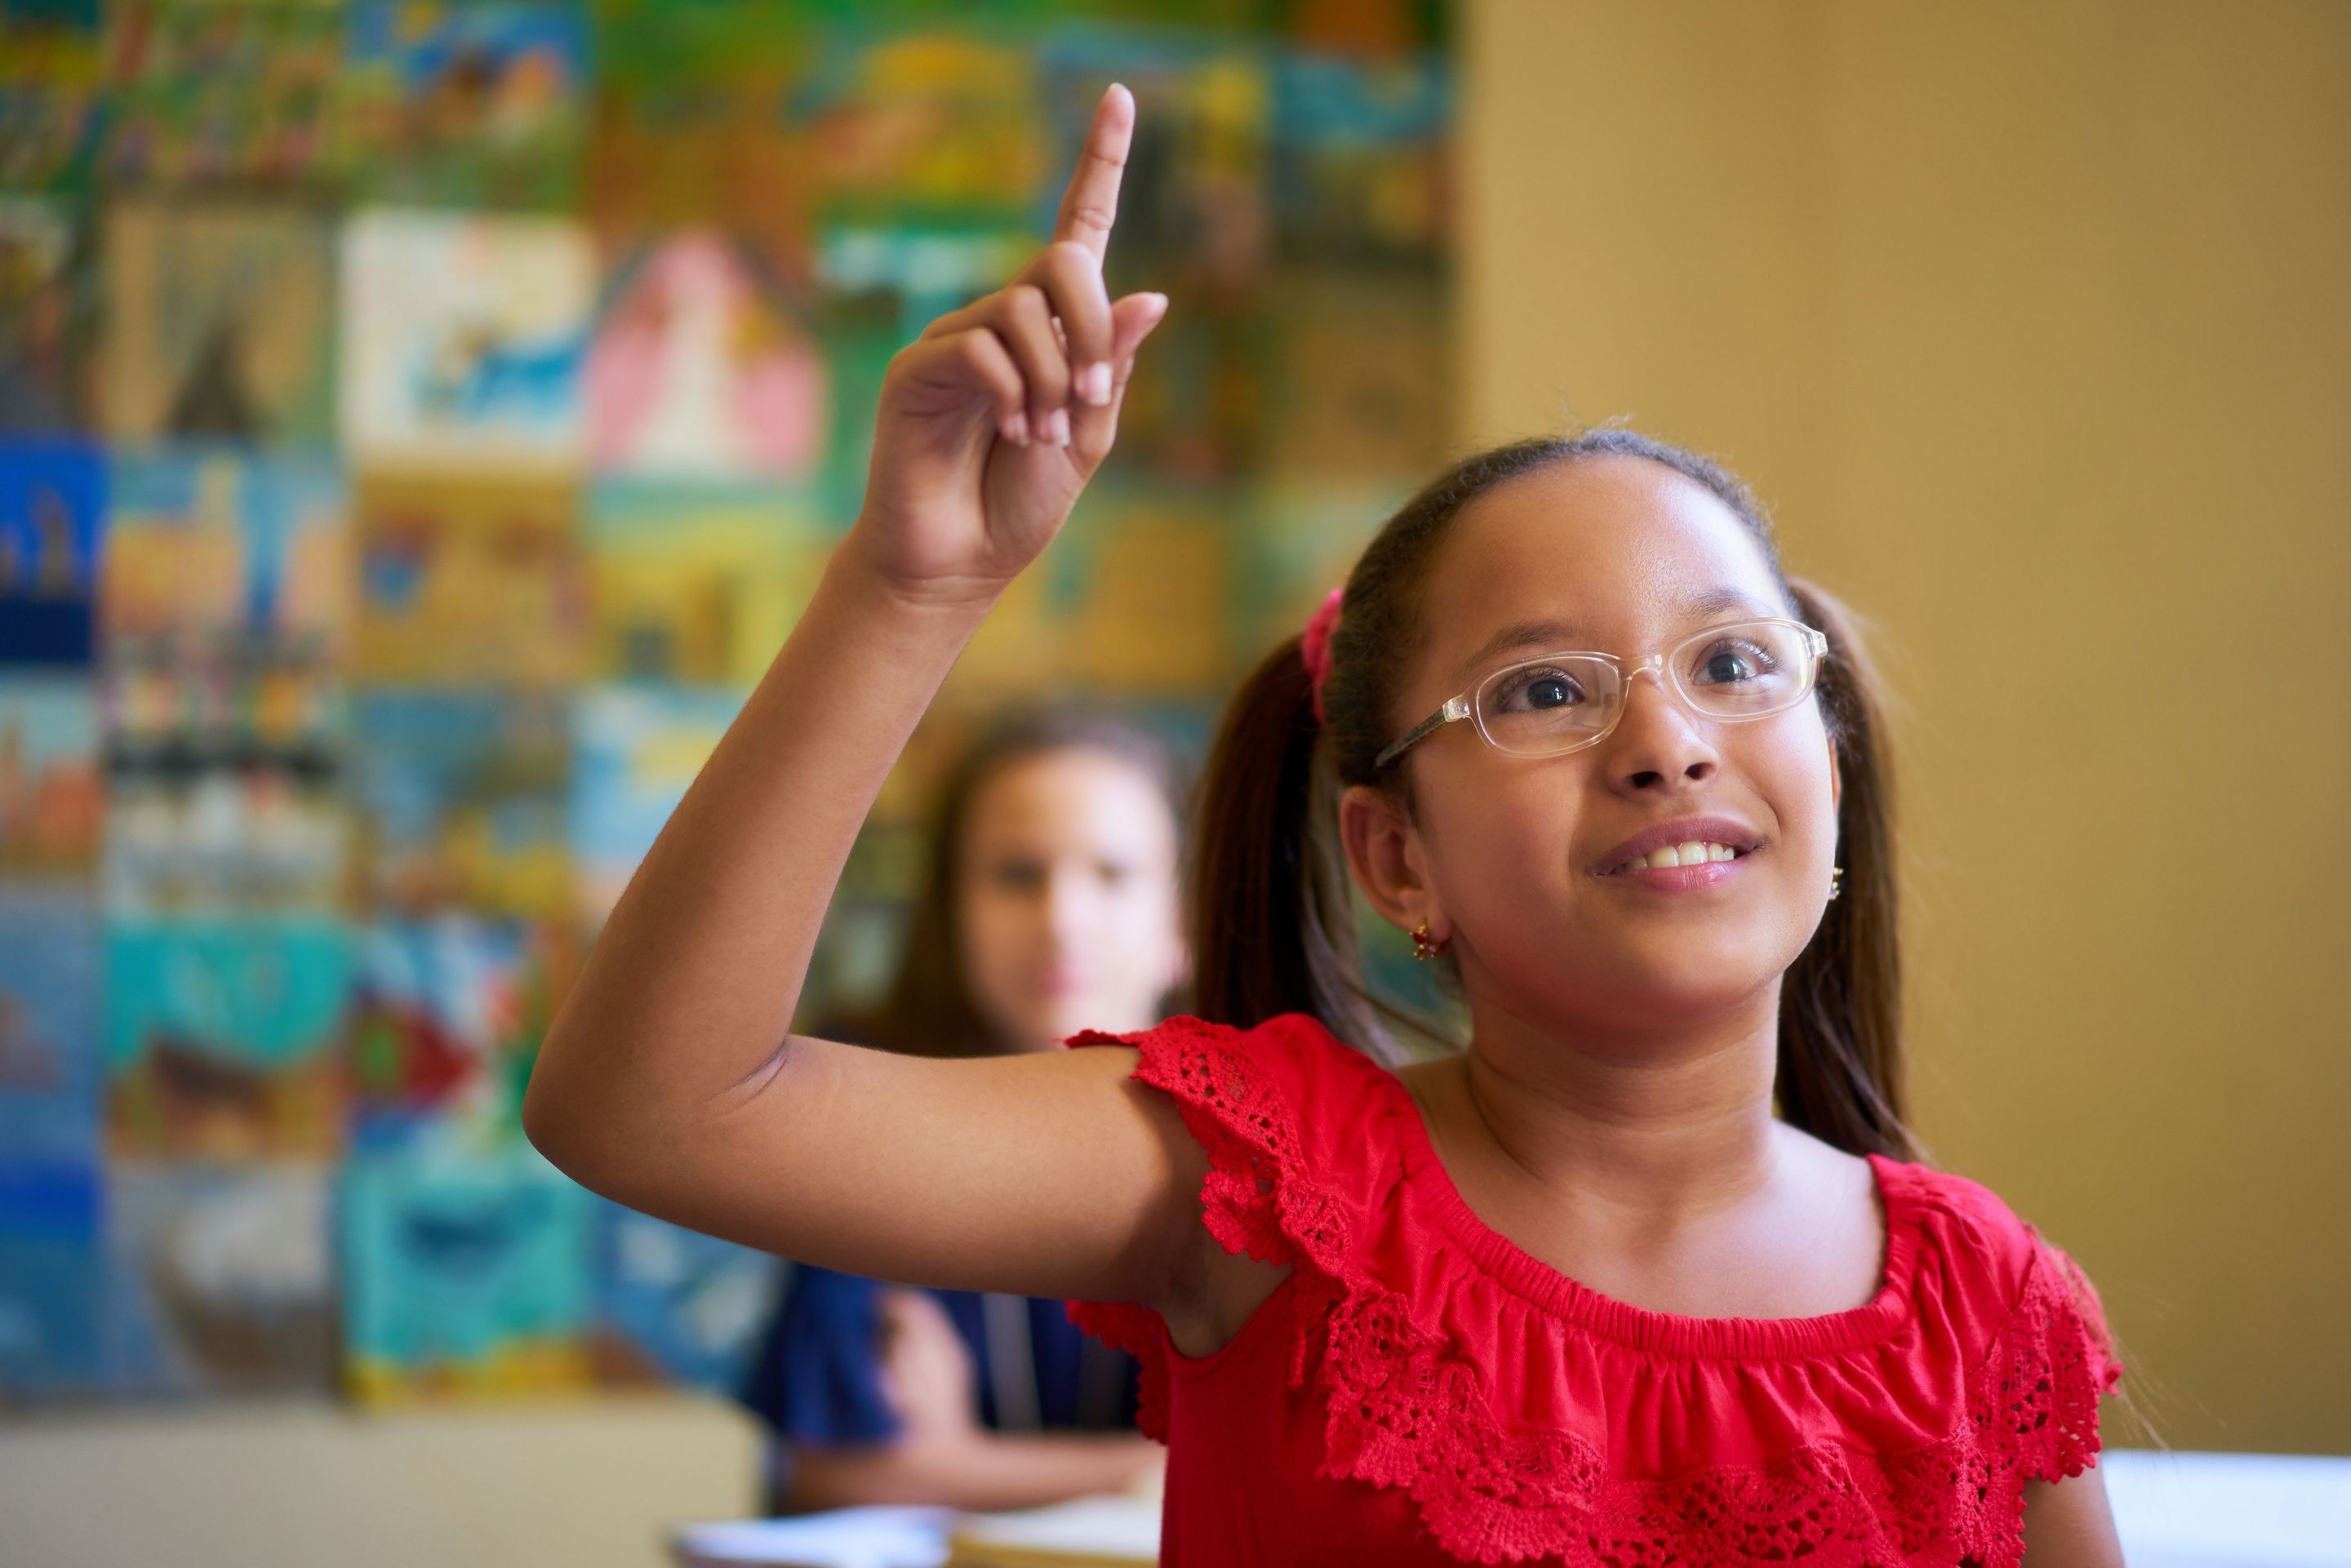 An elementary student raising her hand in class